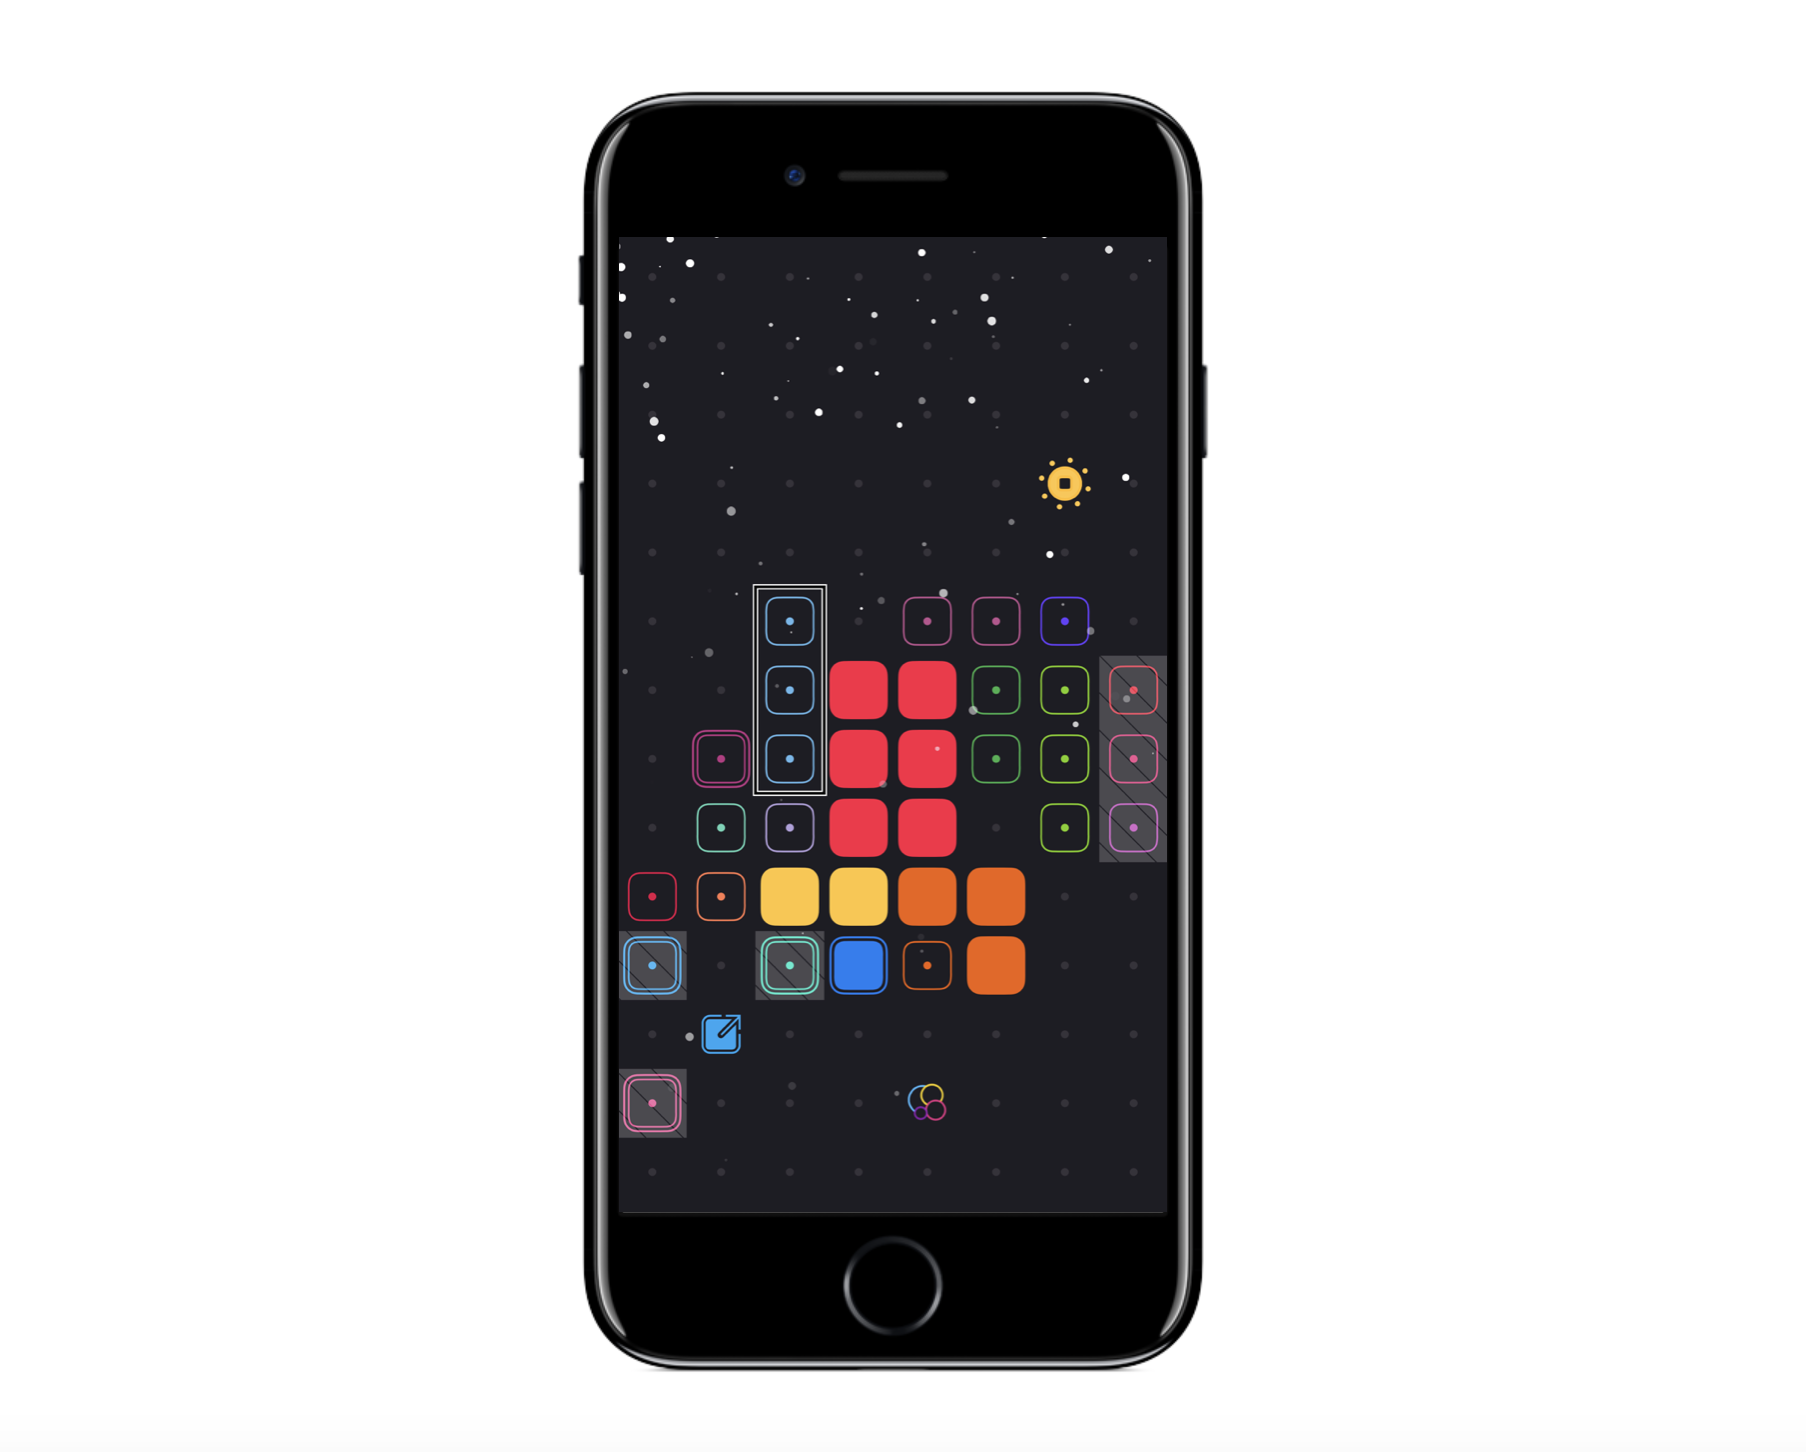 Not only is    Blackbox by Ryan McLeod    an amazingly designed game, and winner of an Apple Design Award, but it also is fully accessible, taking advantage on iOS's Accessibility features.